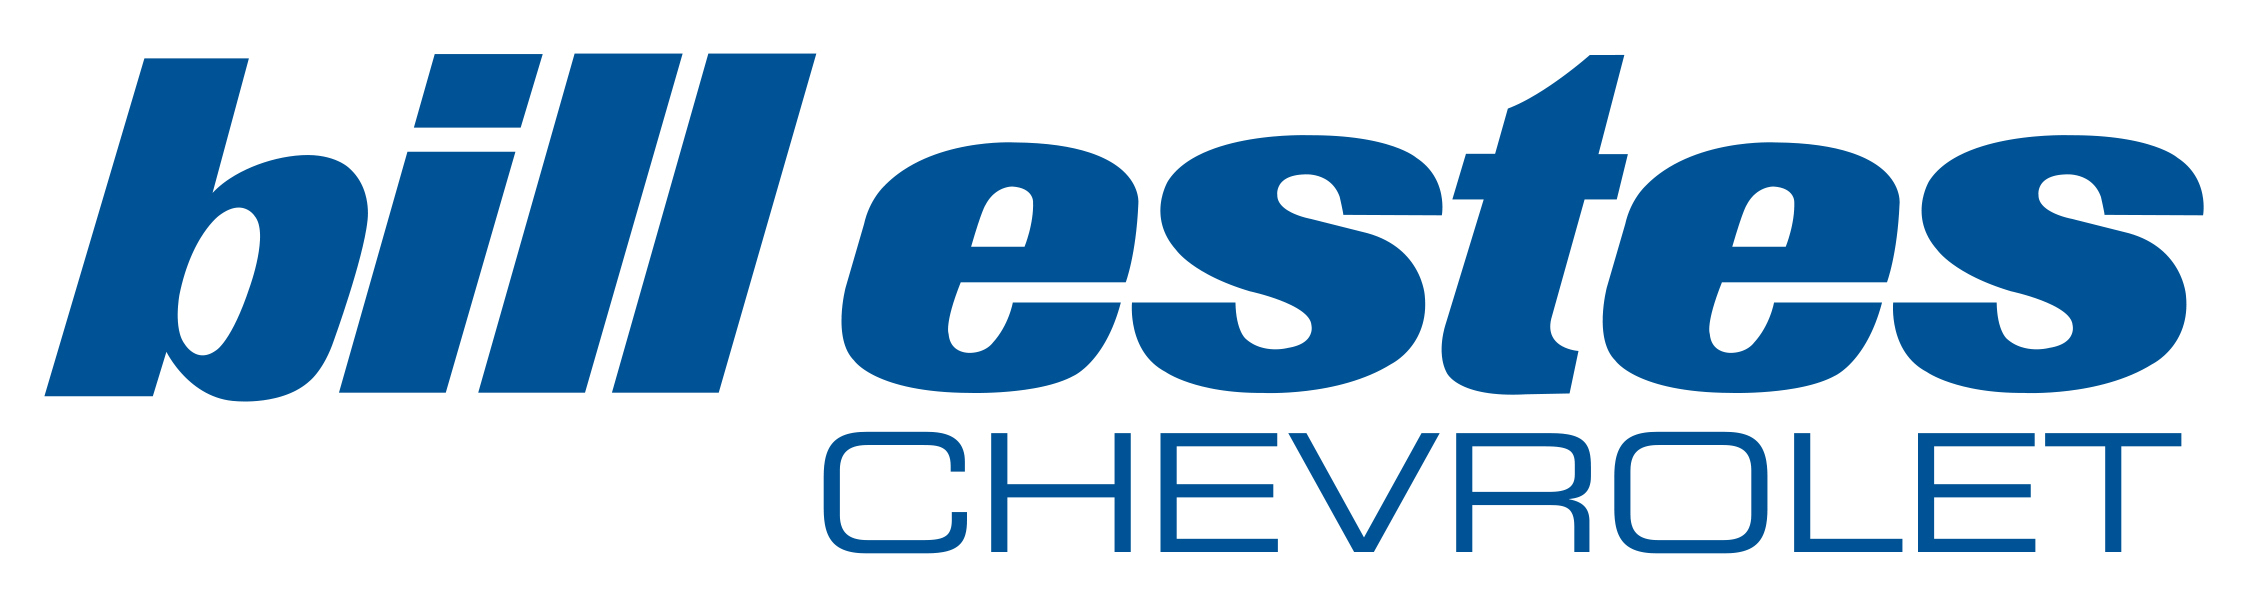 Bill Estes Chevy logo